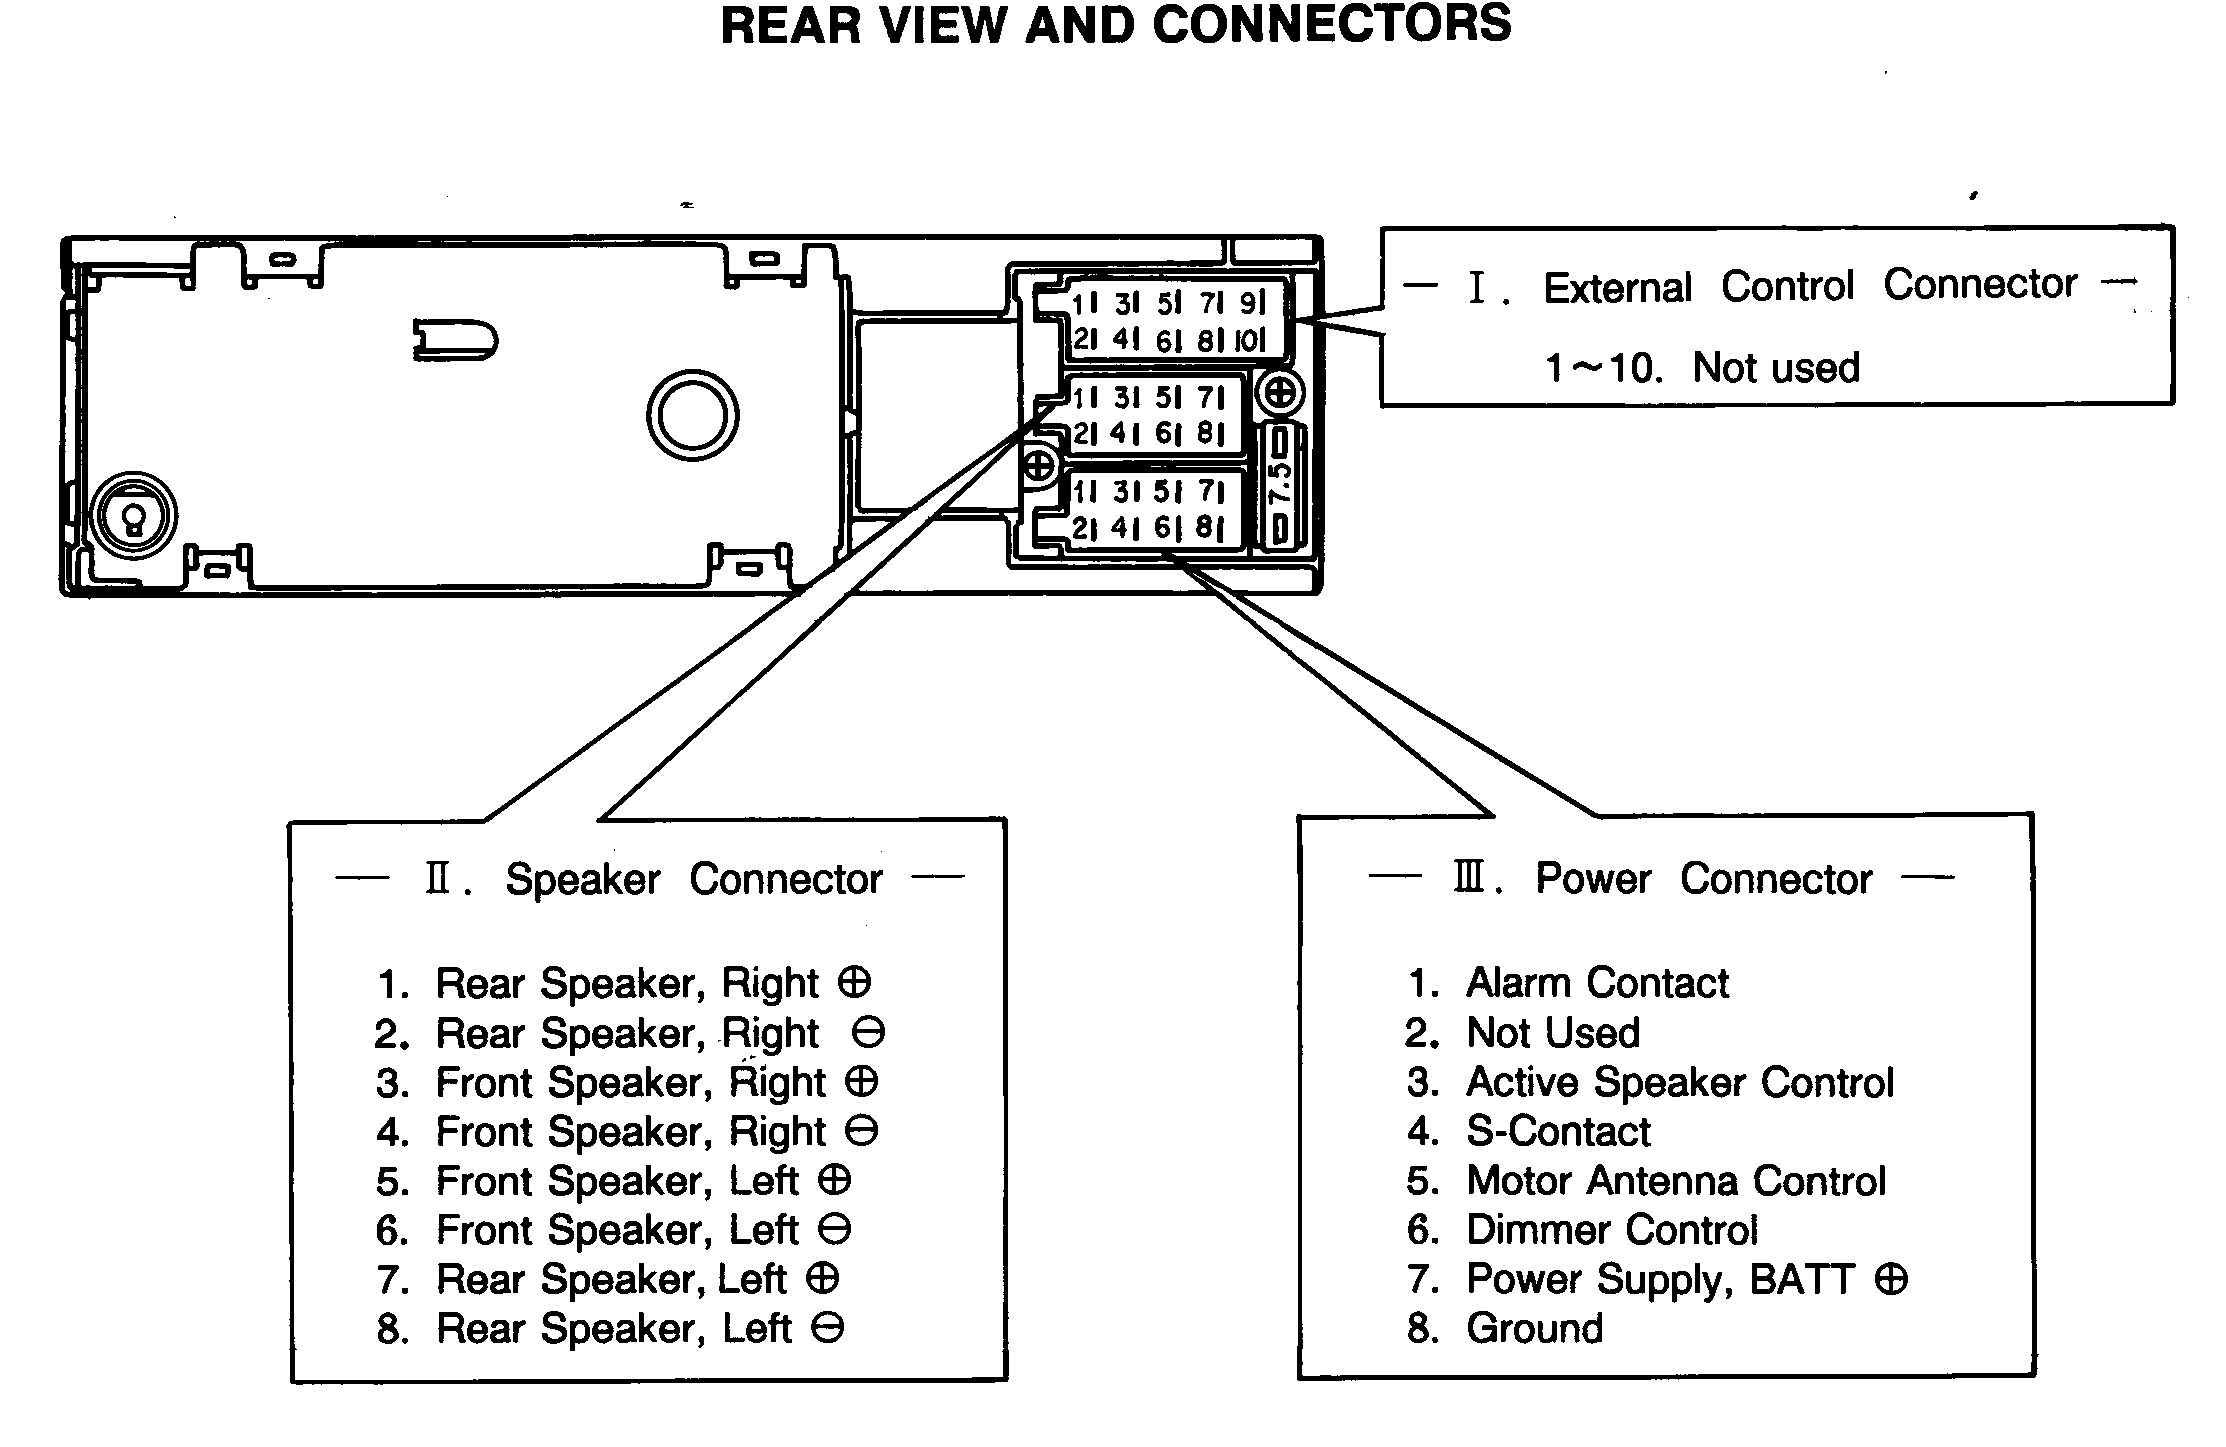 Wiring Diagrams for Car Audio | My Wiring DIagram